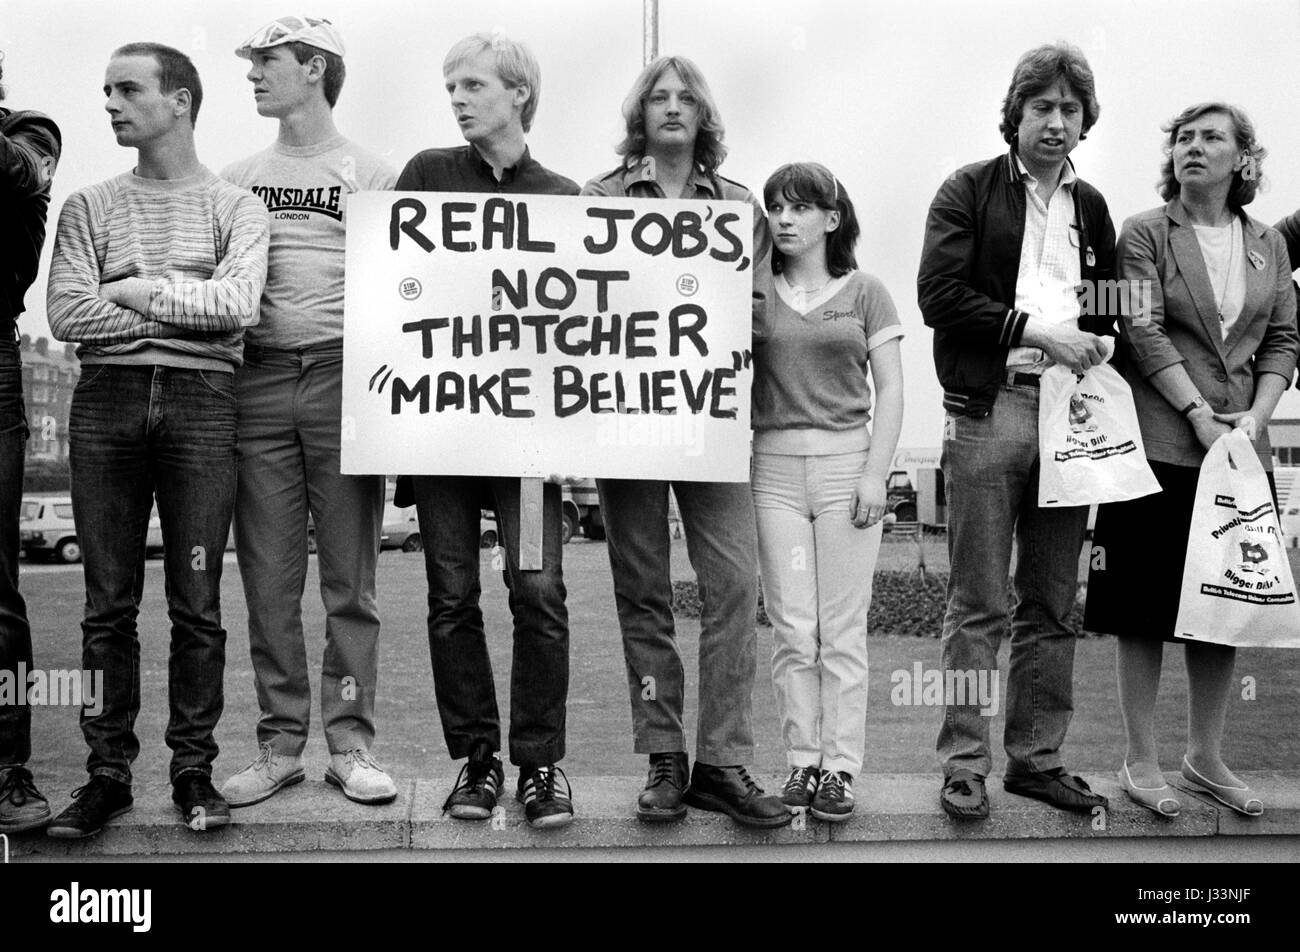 General Election 1983 Uk. Students and young adults demonstrate against the lack of job opportunities in Britain - Stock Image